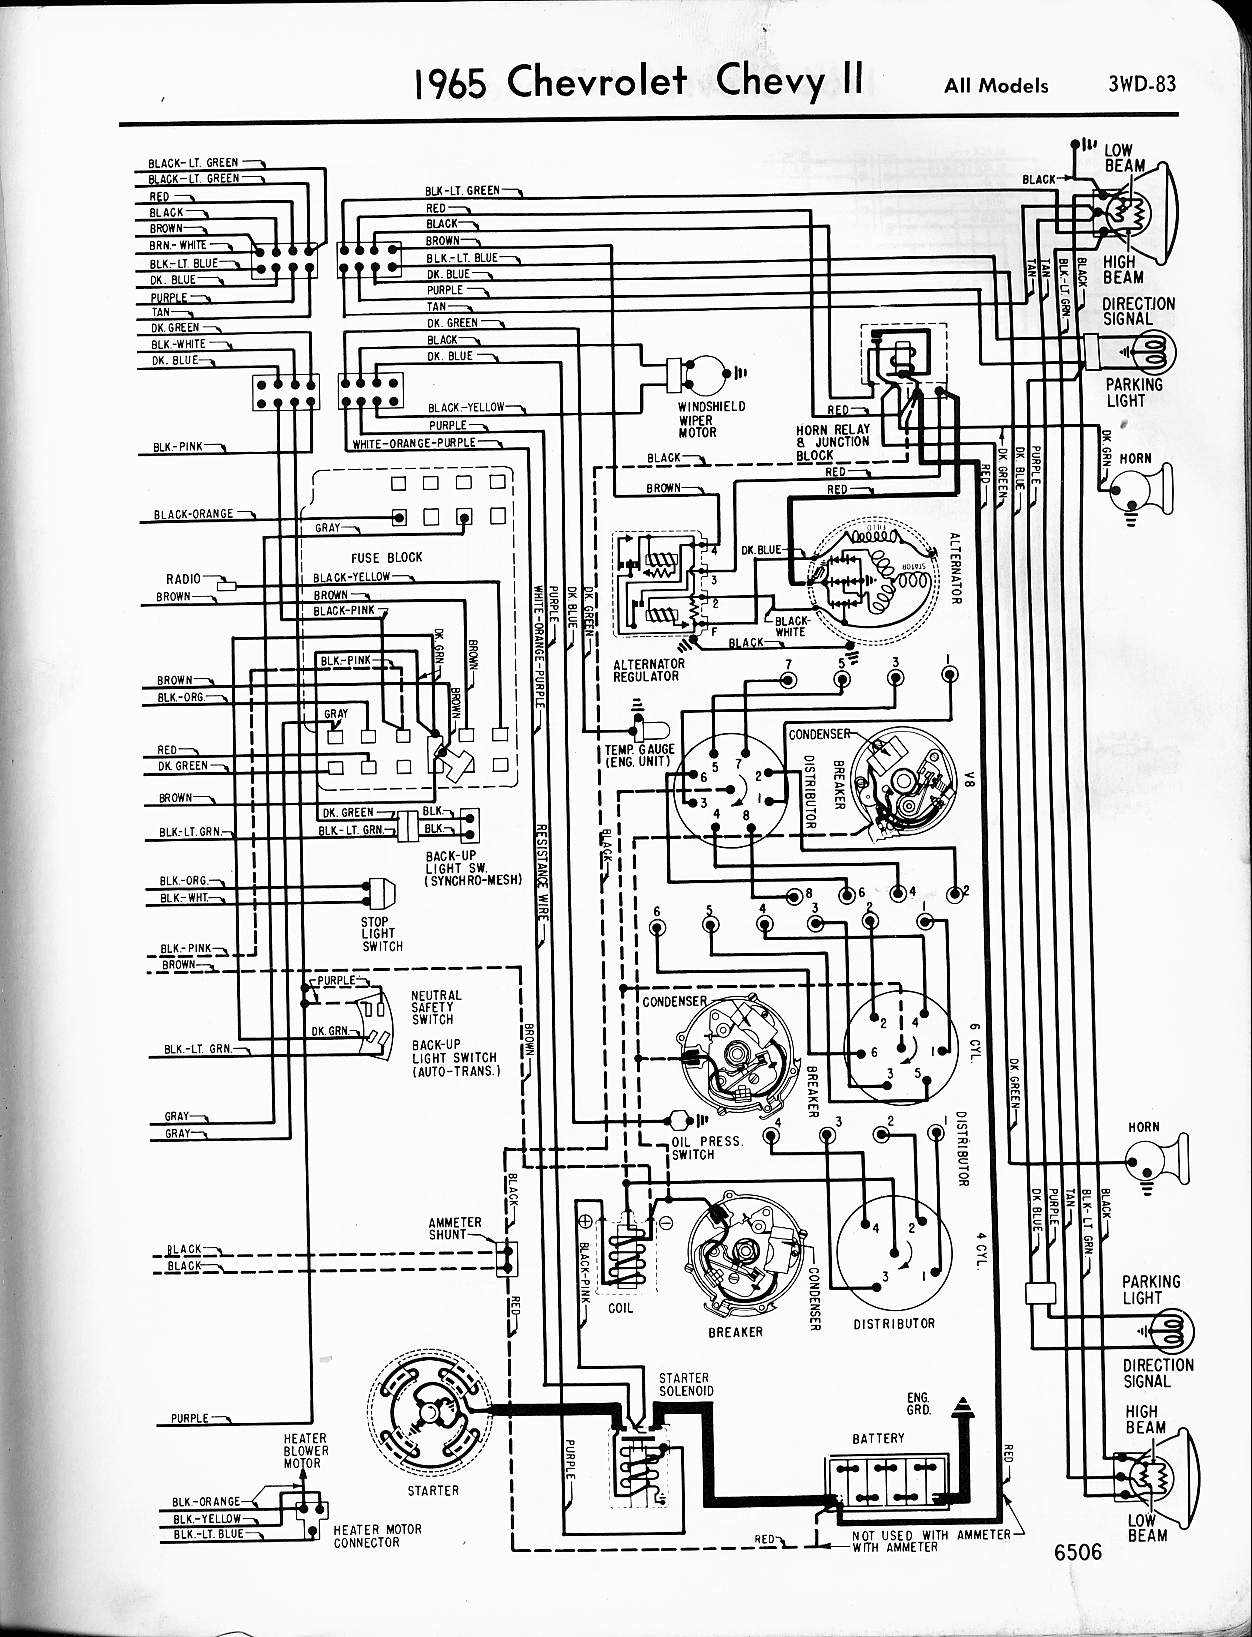 1974 Chevy C10 Wiring Diagram | Online Wiring Diagram on